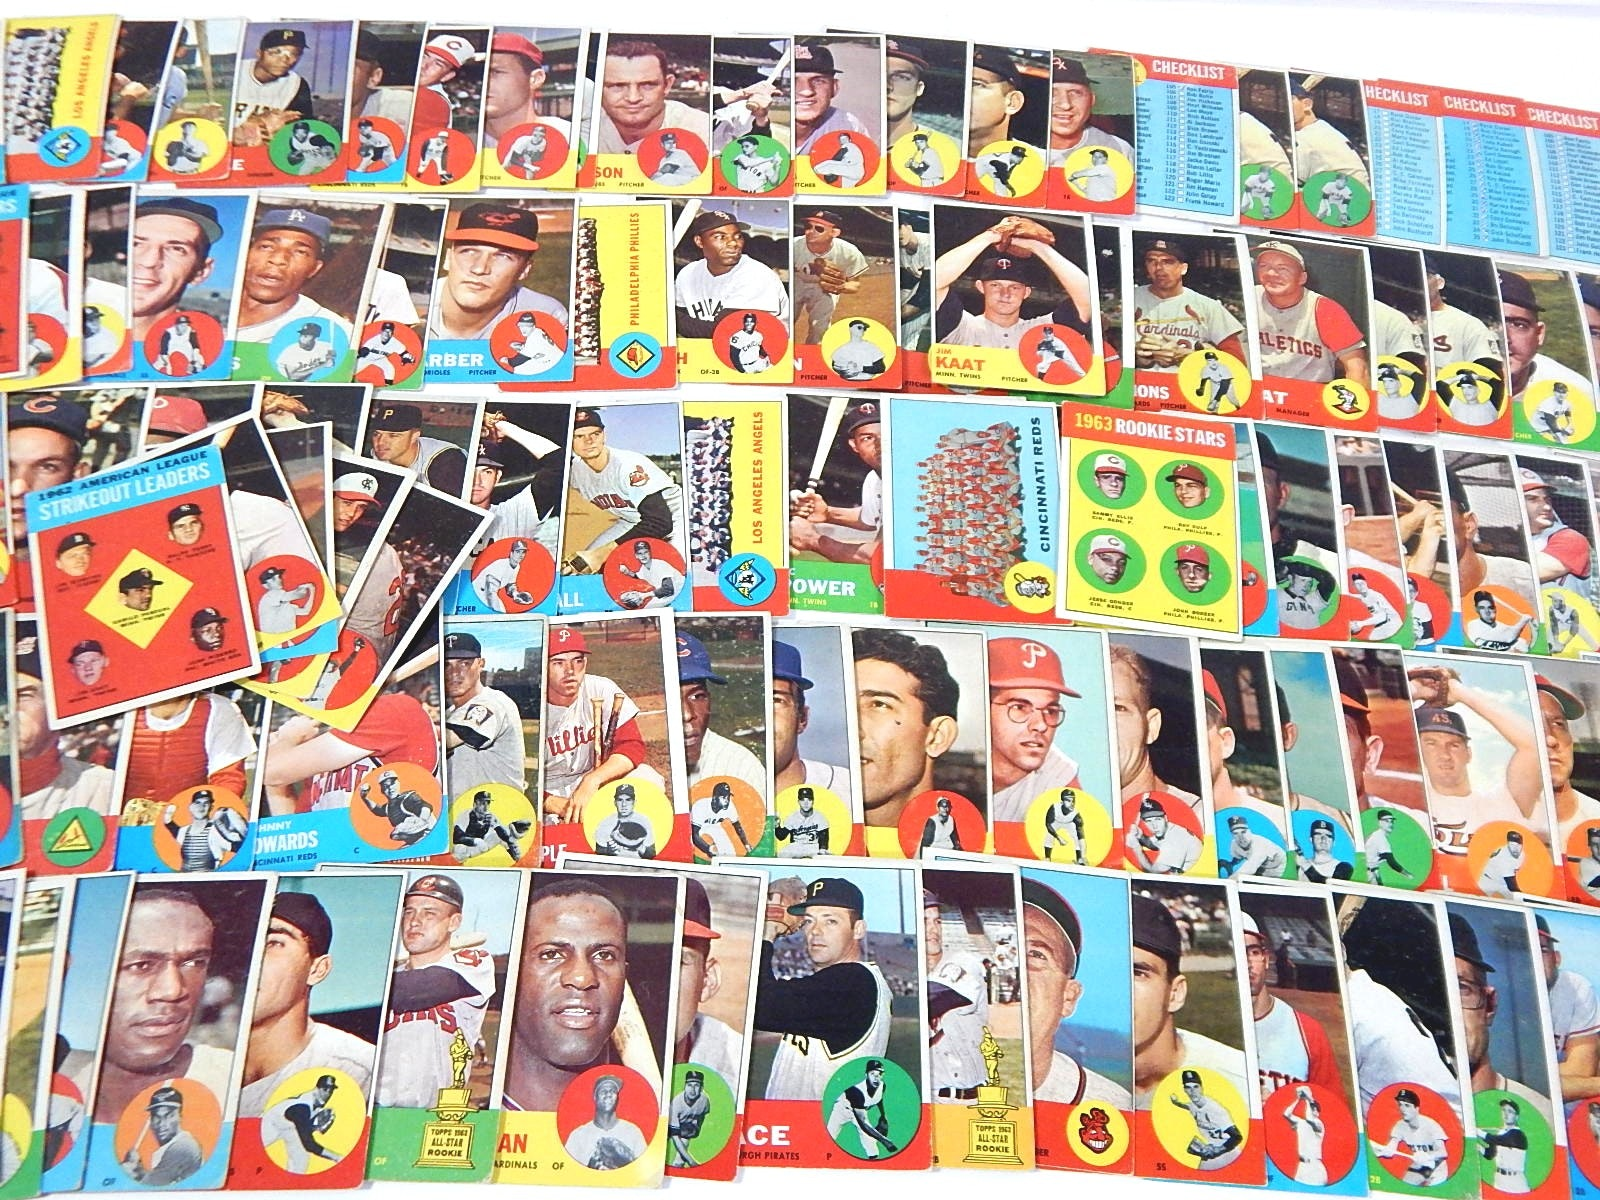 1963 Topps Baseball Cards with Bob Uecker Rookie Card, Jim Kaat- Over 100 Ct.